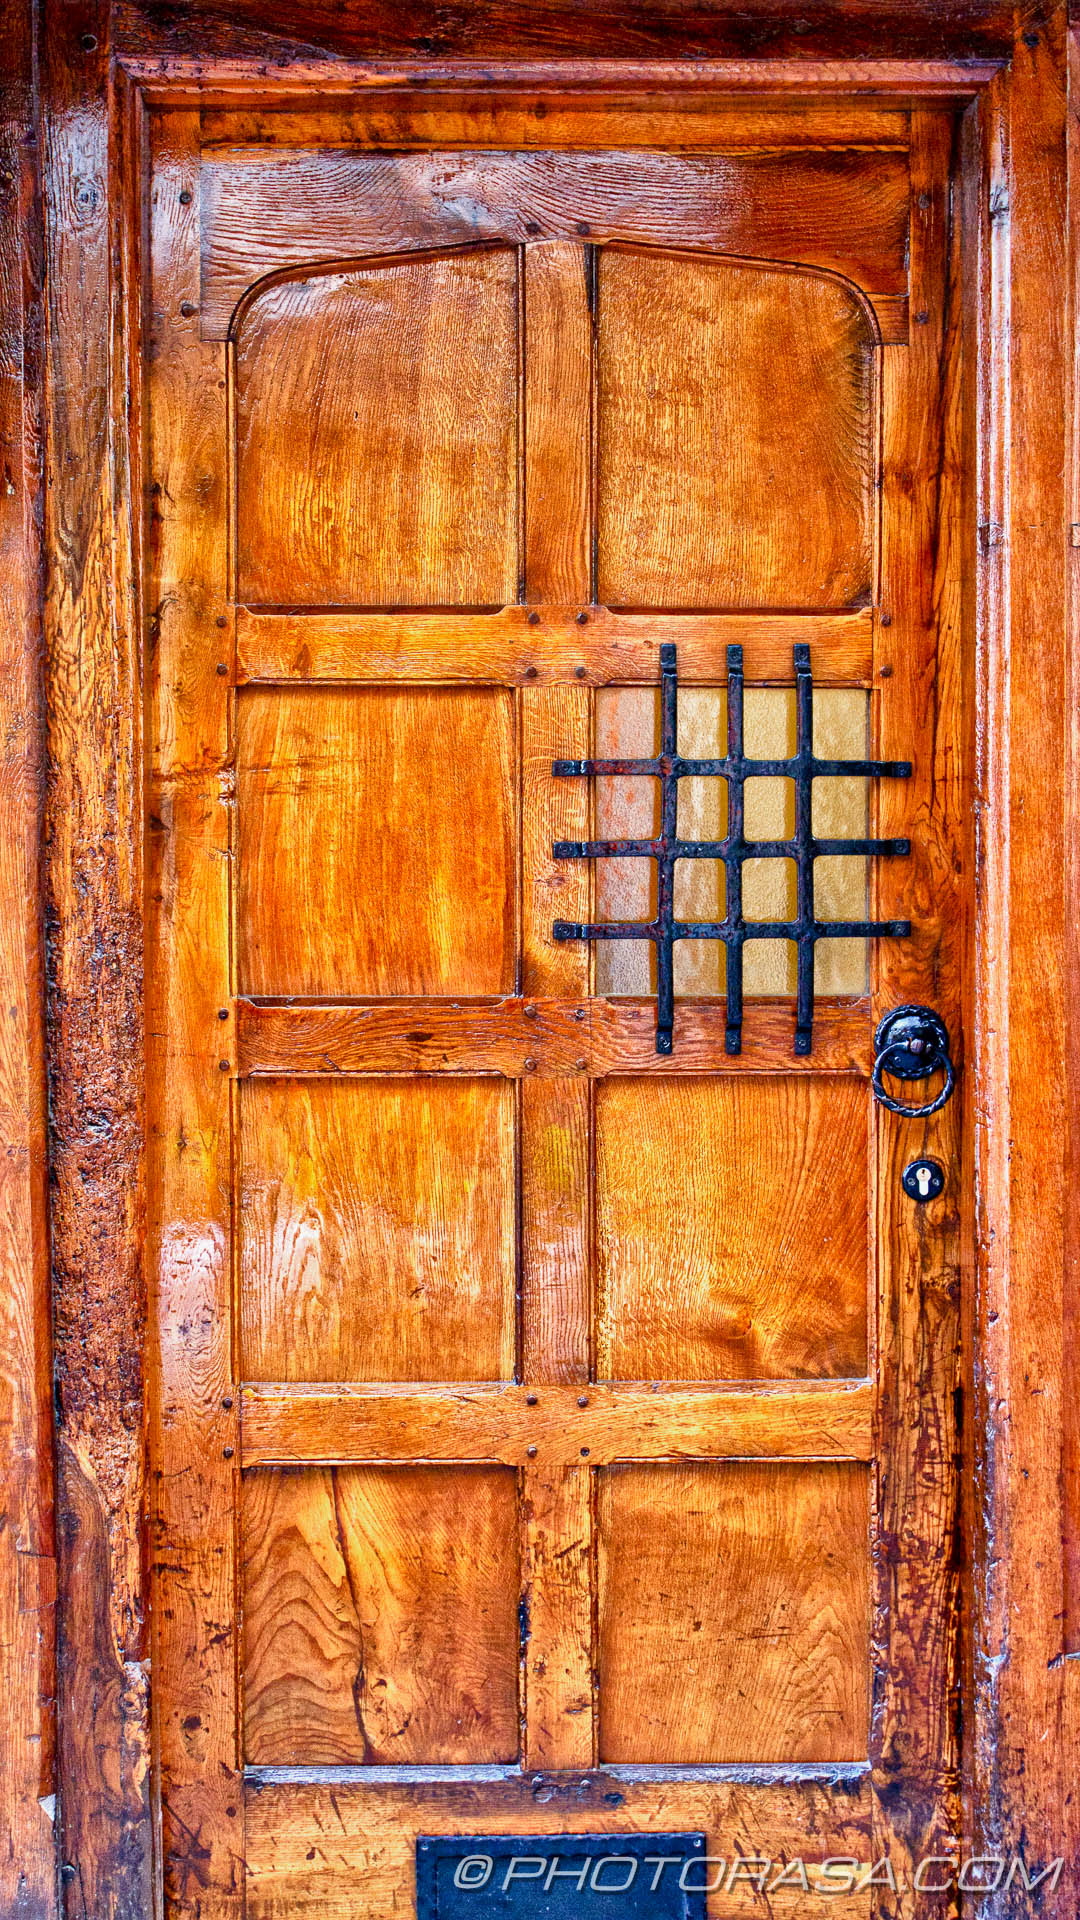 http://photorasa.com/canterbury-trip/old-wooden-door-with-viewing-panel/